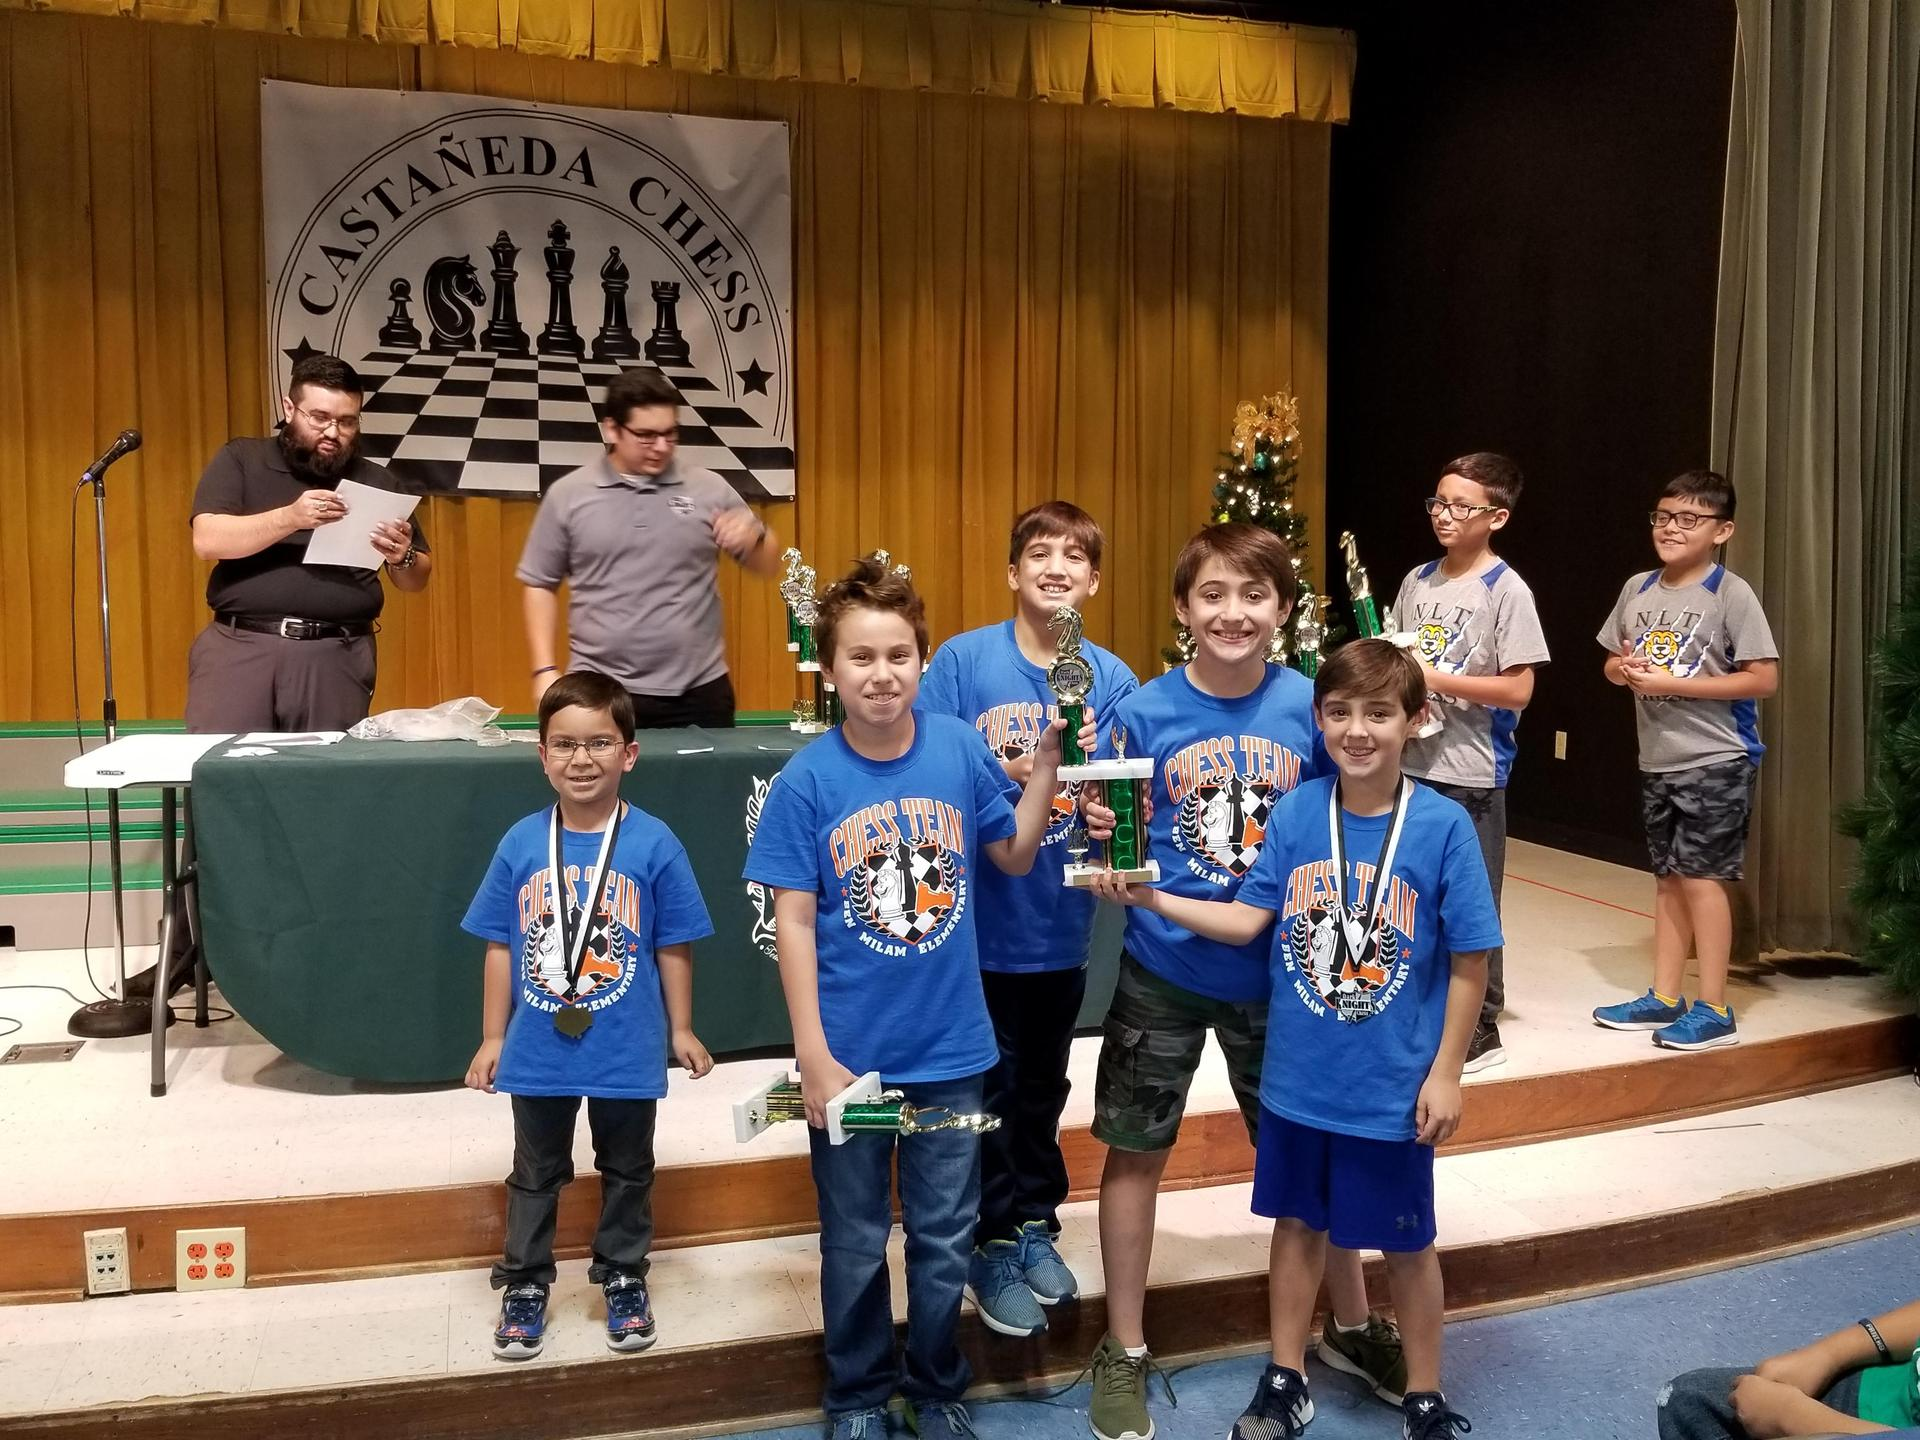 Chess team with trophy.